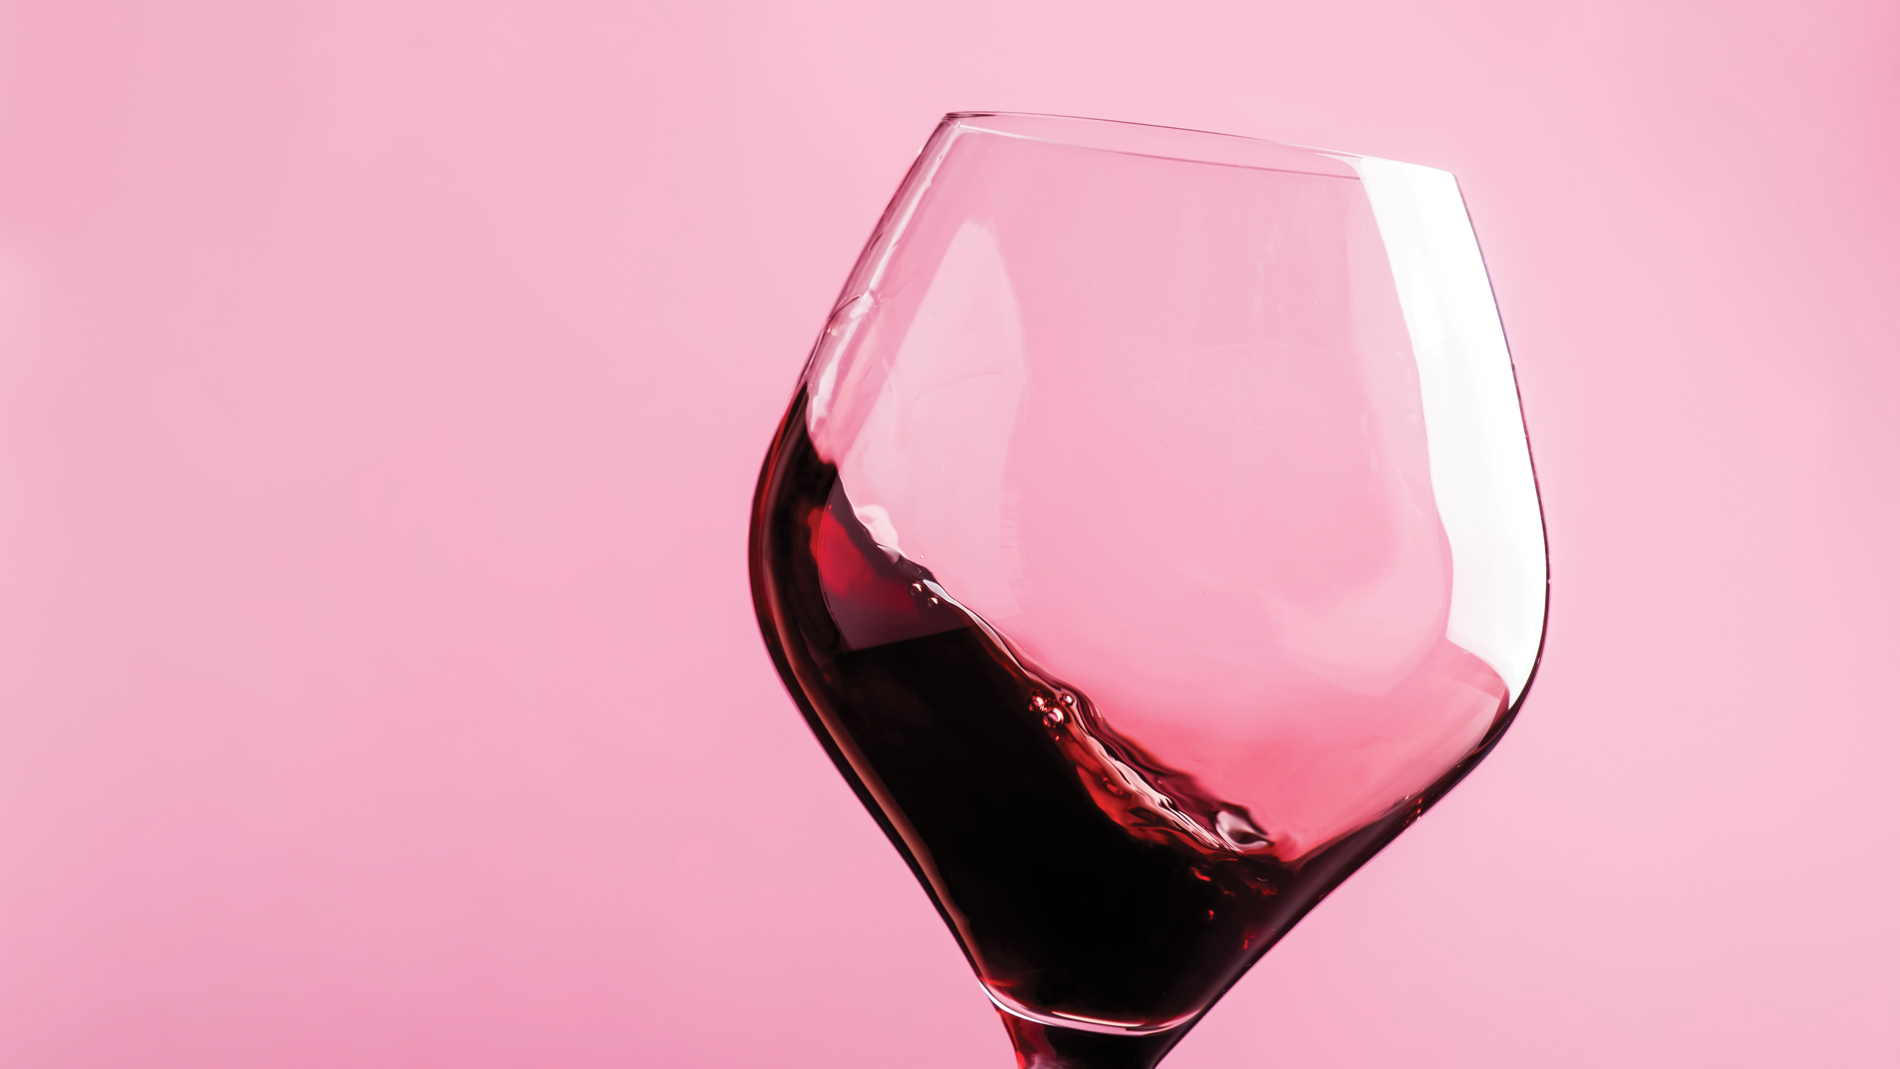 a glass of red wine on a pink background